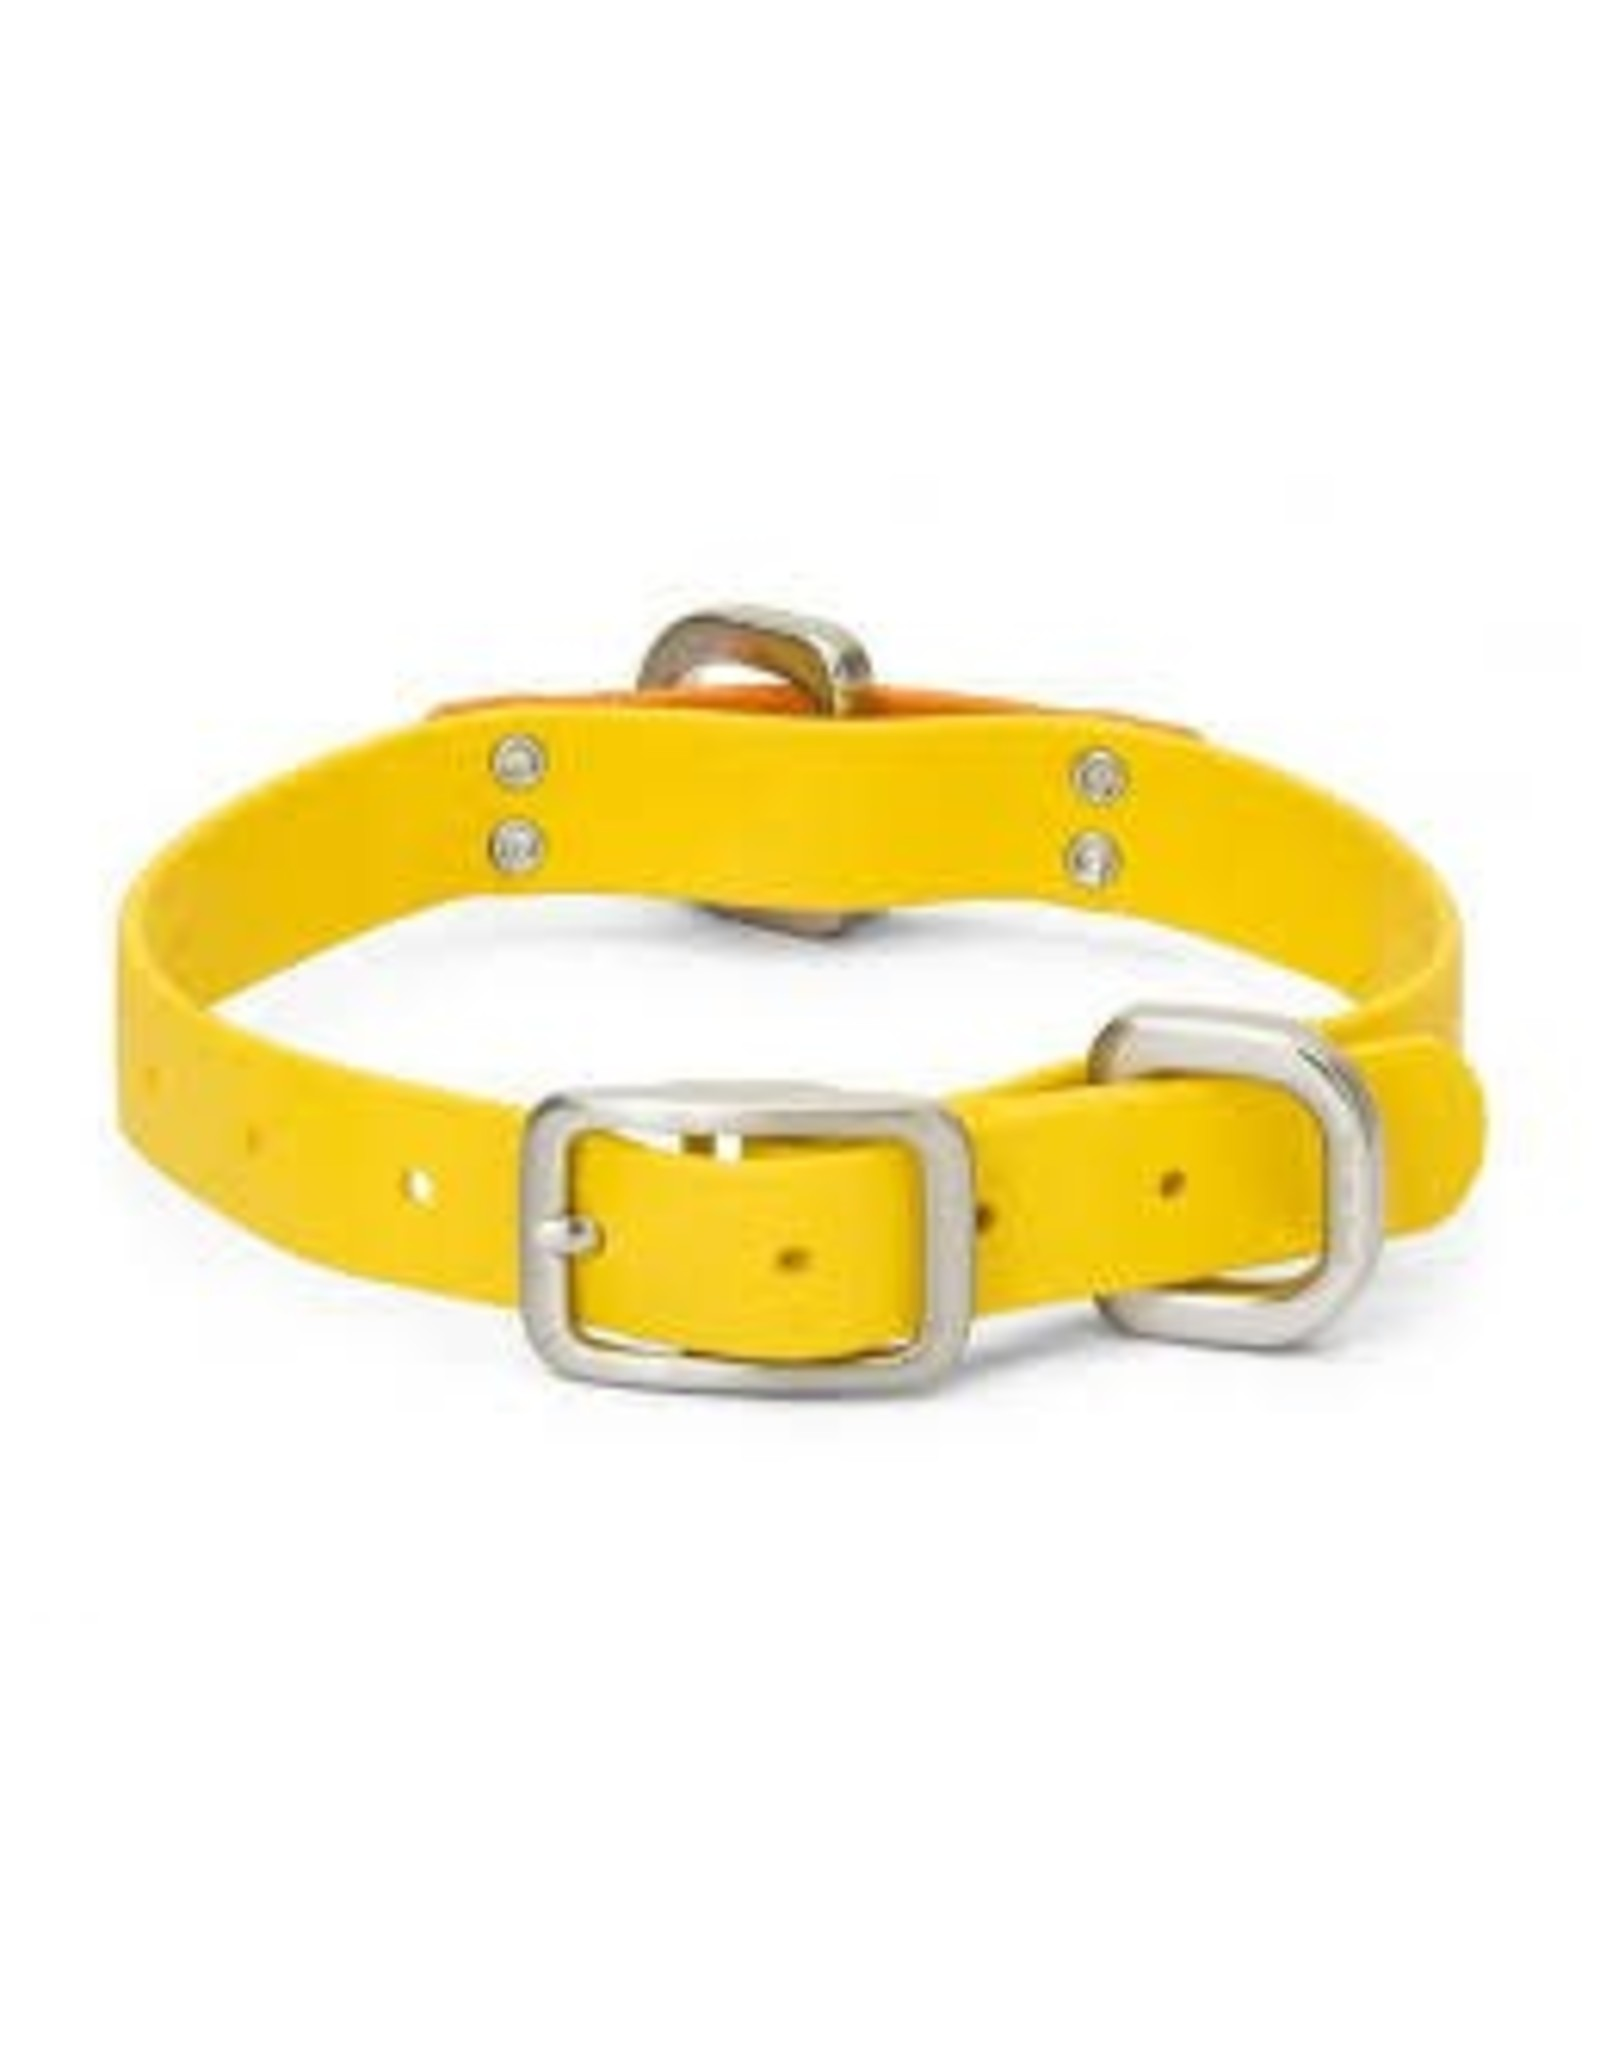 WEST PAW WEST PAW JAUNTS COLLAR SM-YELLOW